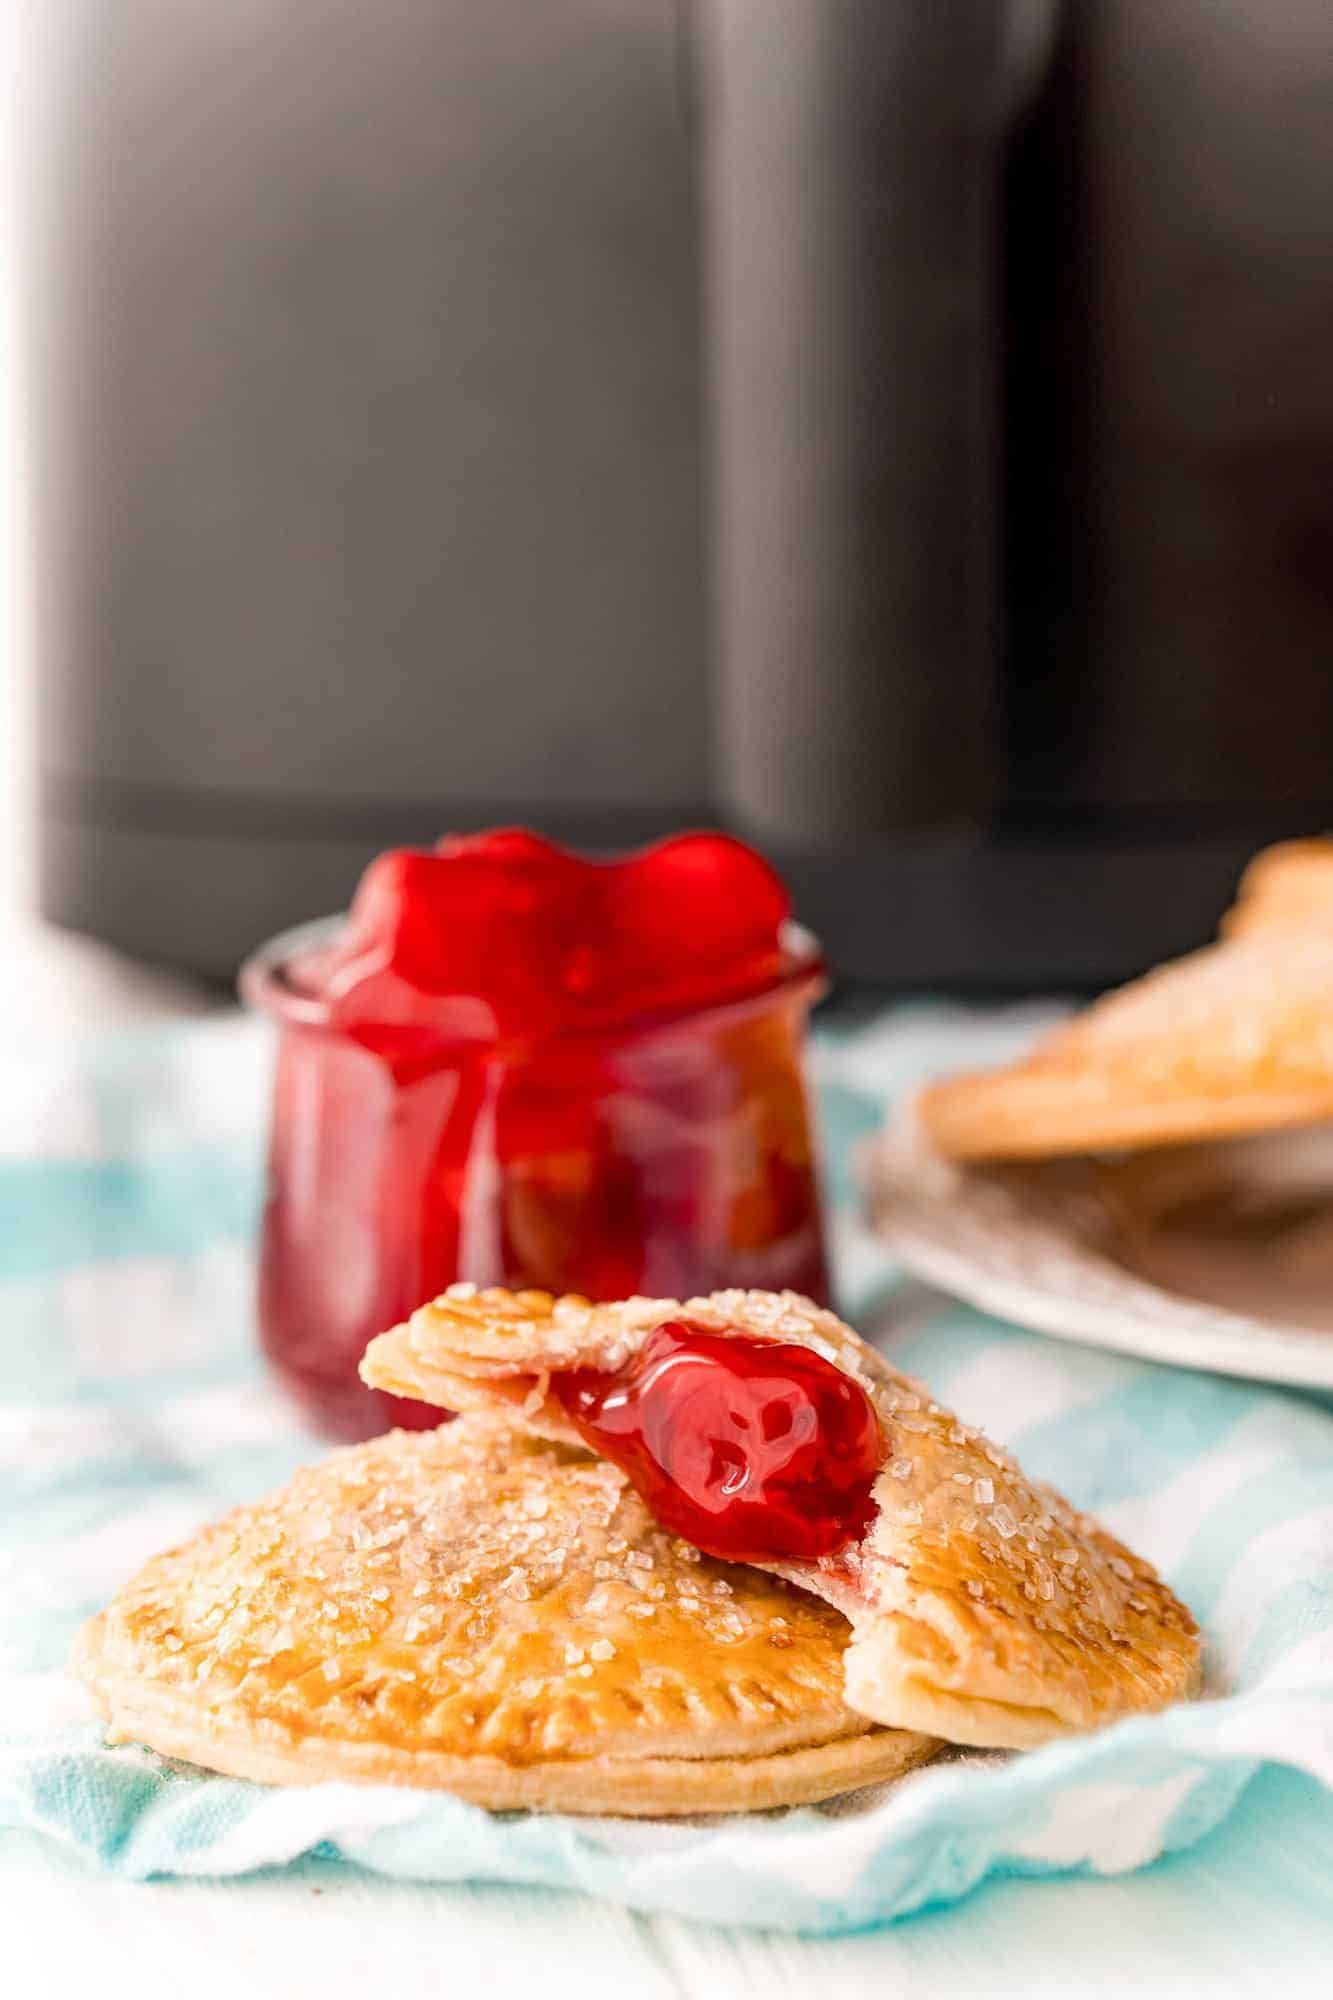 Cherry hand pies in front of an air fryer.